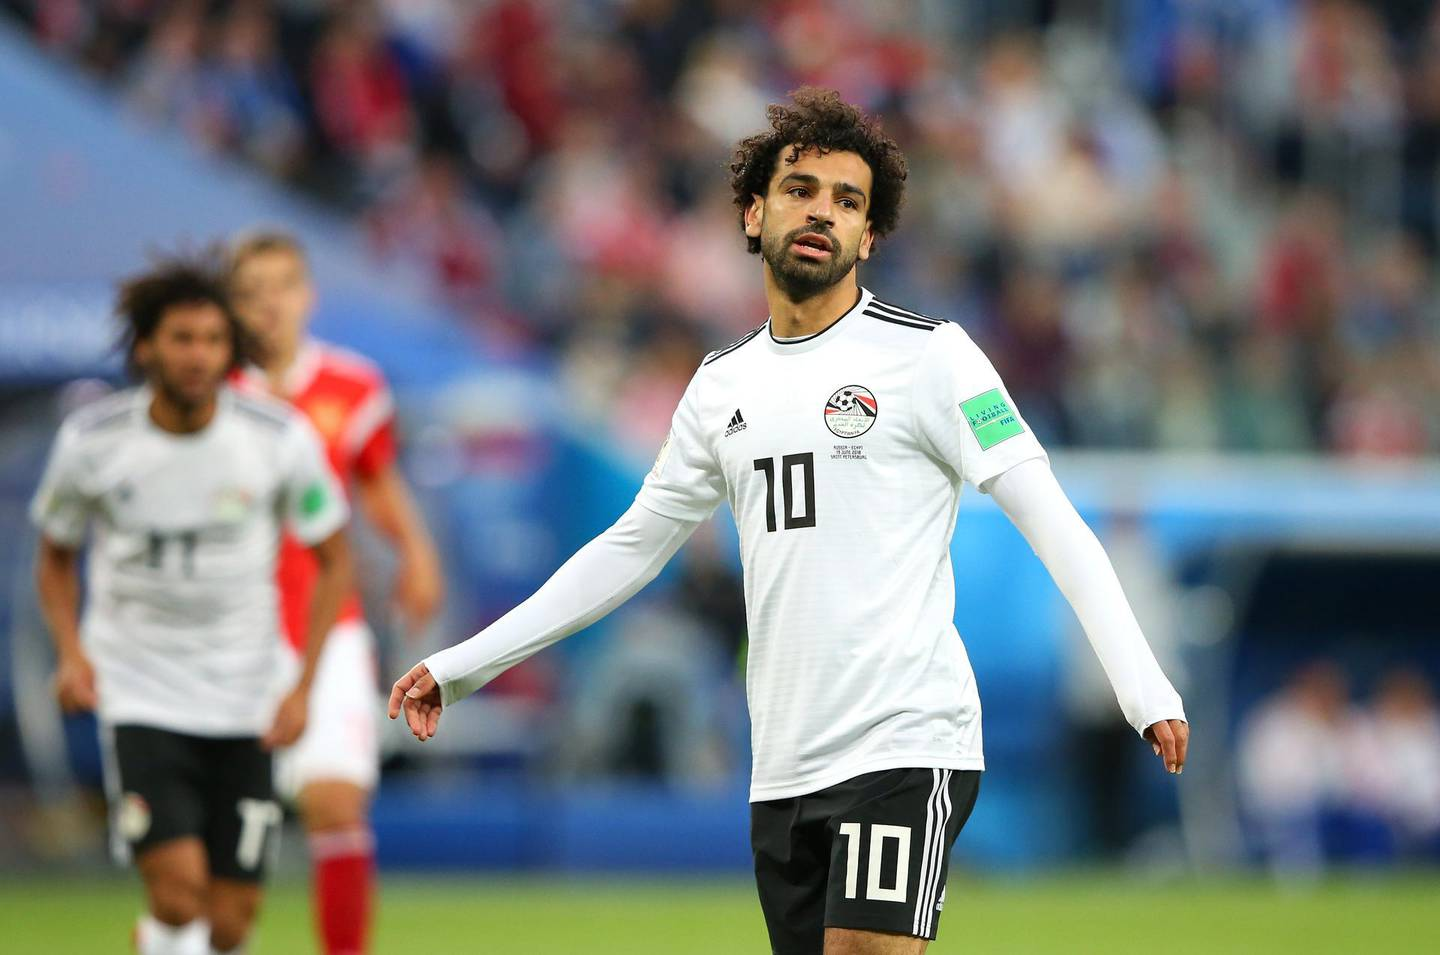 SAINT PETERSBURG, RUSSIA - JUNE 19:  Mohamed Salah of Egypt looks on during the 2018 FIFA World Cup Russia group A match between Russia and Egypt at Saint Petersburg Stadium on June 19, 2018 in Saint Petersburg, Russia.  (Photo by Alex Livesey/Getty Images)